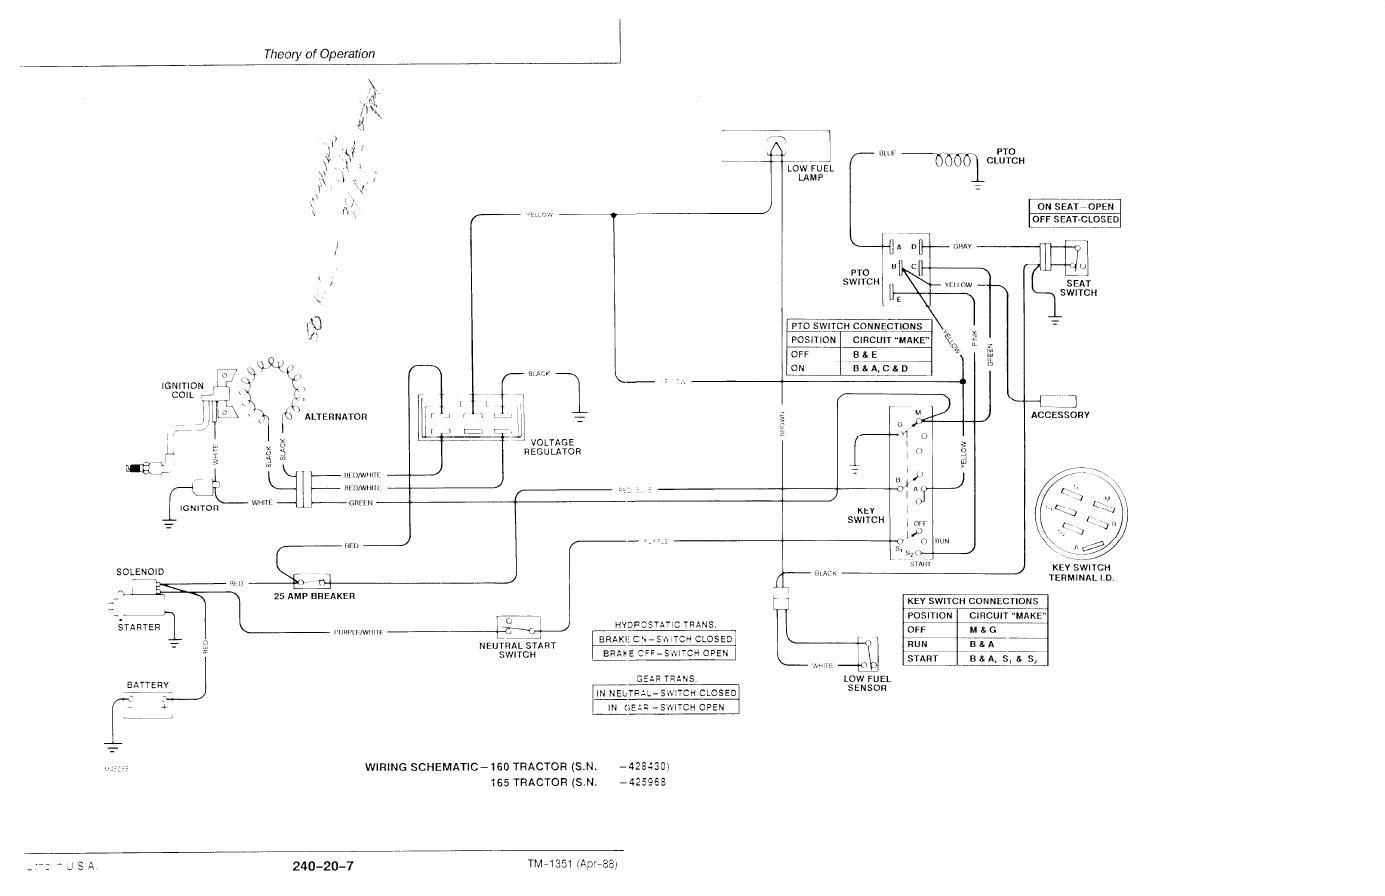 White Lawn Tractor Wiring Diagram - Wiring Diagram Recent gown-grand -  gown-grand.cosavedereanapoli.it | White Riding Mower Wiring Diagram |  | gown-grand.cosavedereanapoli.it